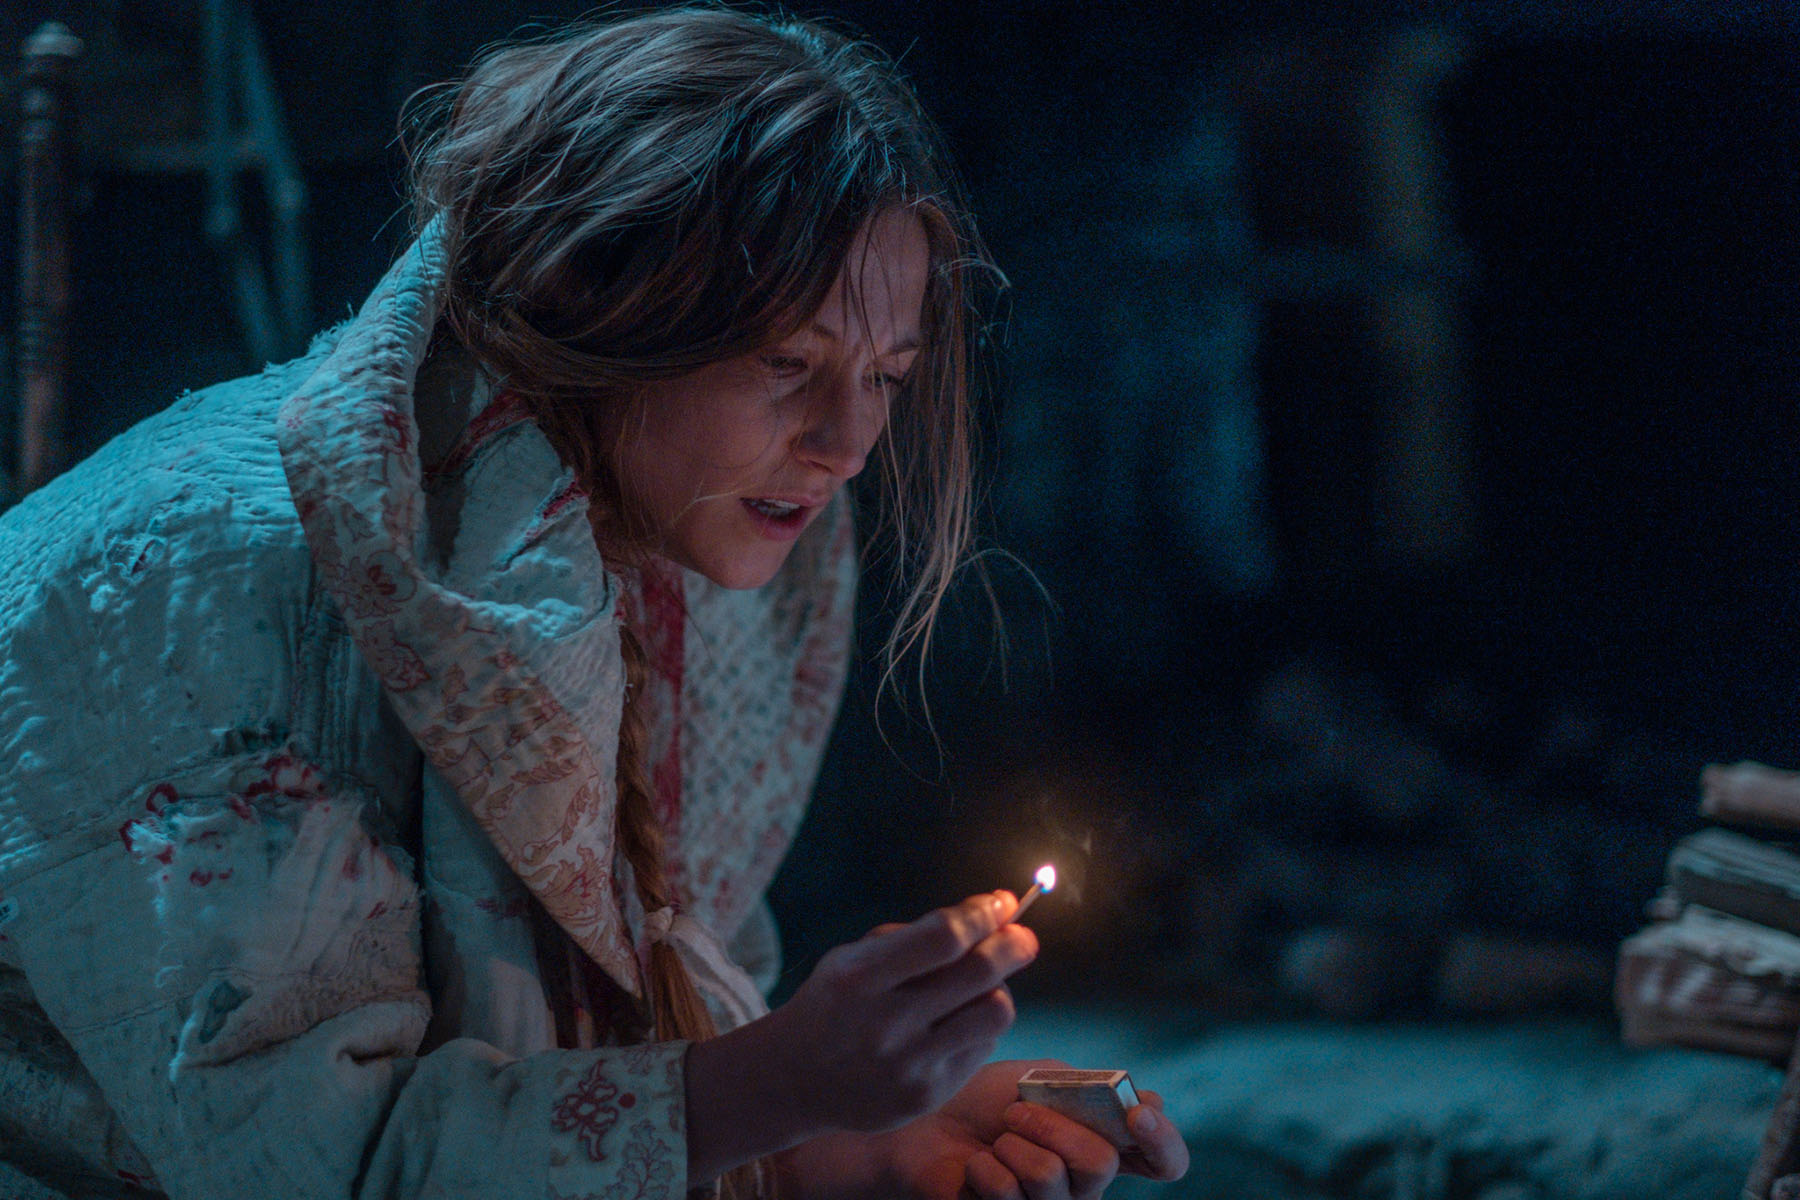 THE WIND, a western horror film arrives in theaters and on demand on April 5, 2019